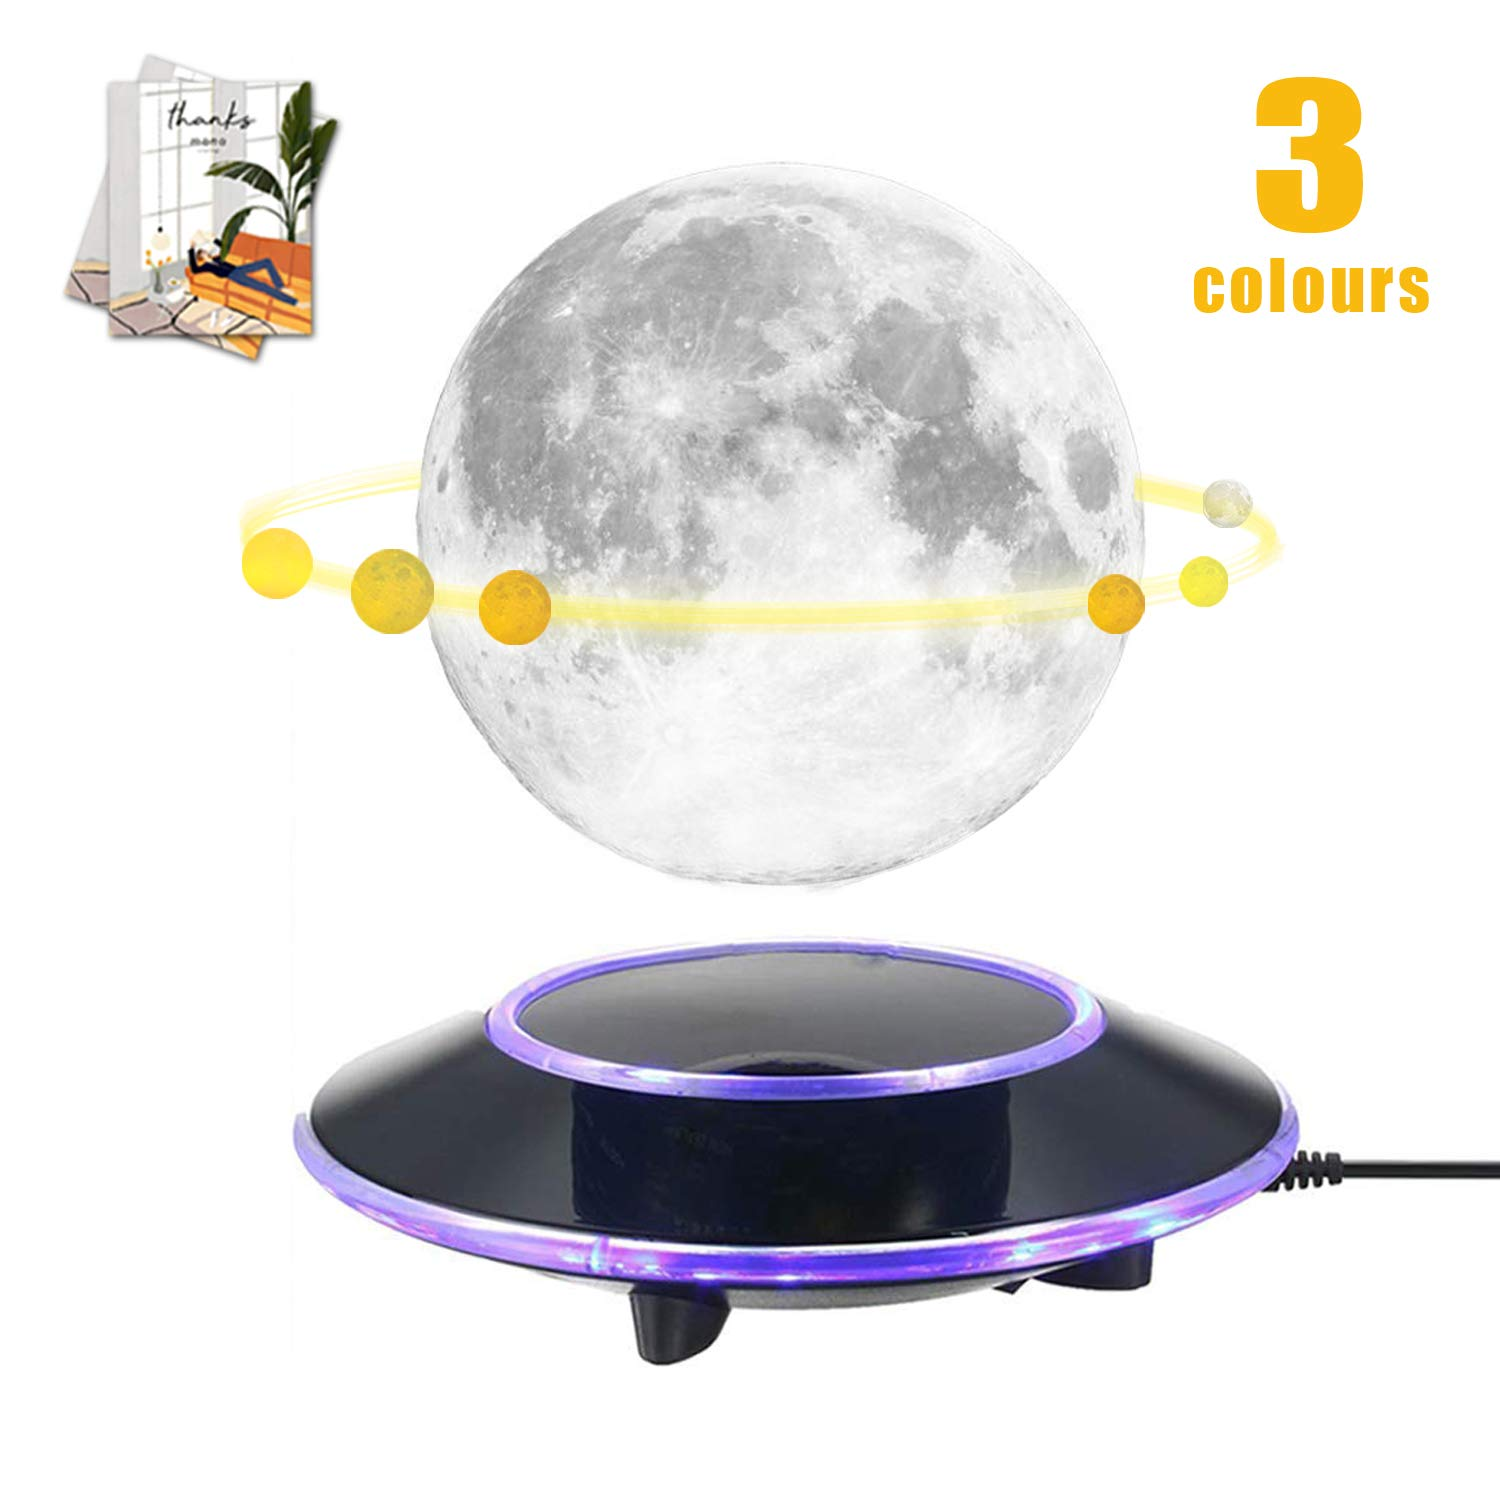 mono living Magnetic Levitating Moon Lamp Night Light 3D Print LED Auto Rotate Birthday Father's Day Gift Gift for Him Her Mother Family Couple Daughter TeenGirl Boyfriend Girlfriend 5.9''